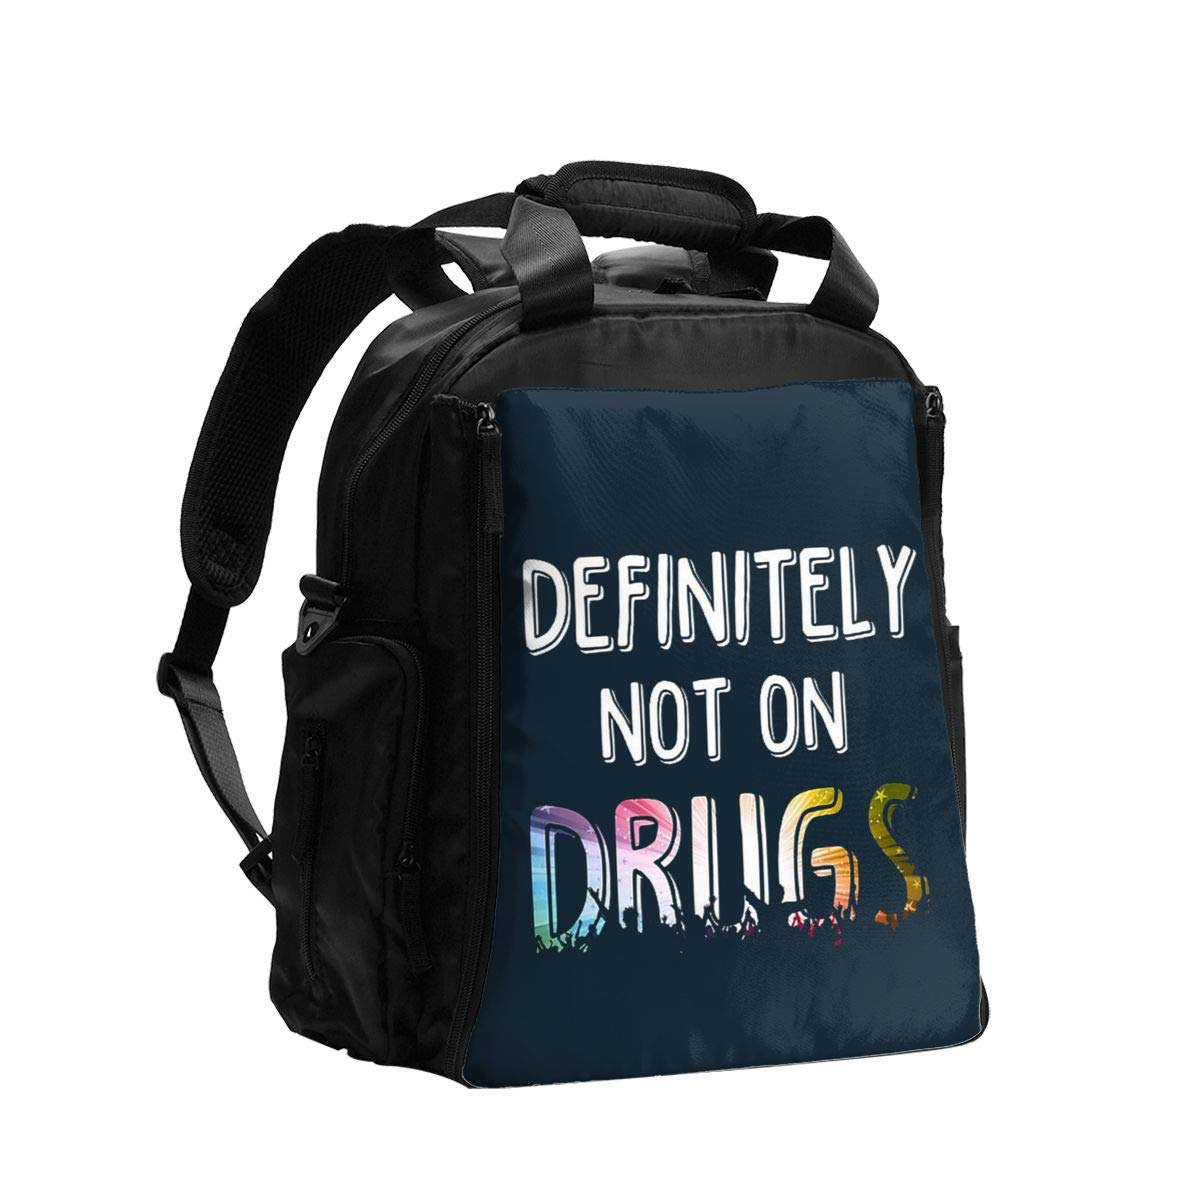 Definitely Not On Drugs Diaper Bag Backpack Travel Backpack Maternity Baby Changing Bags